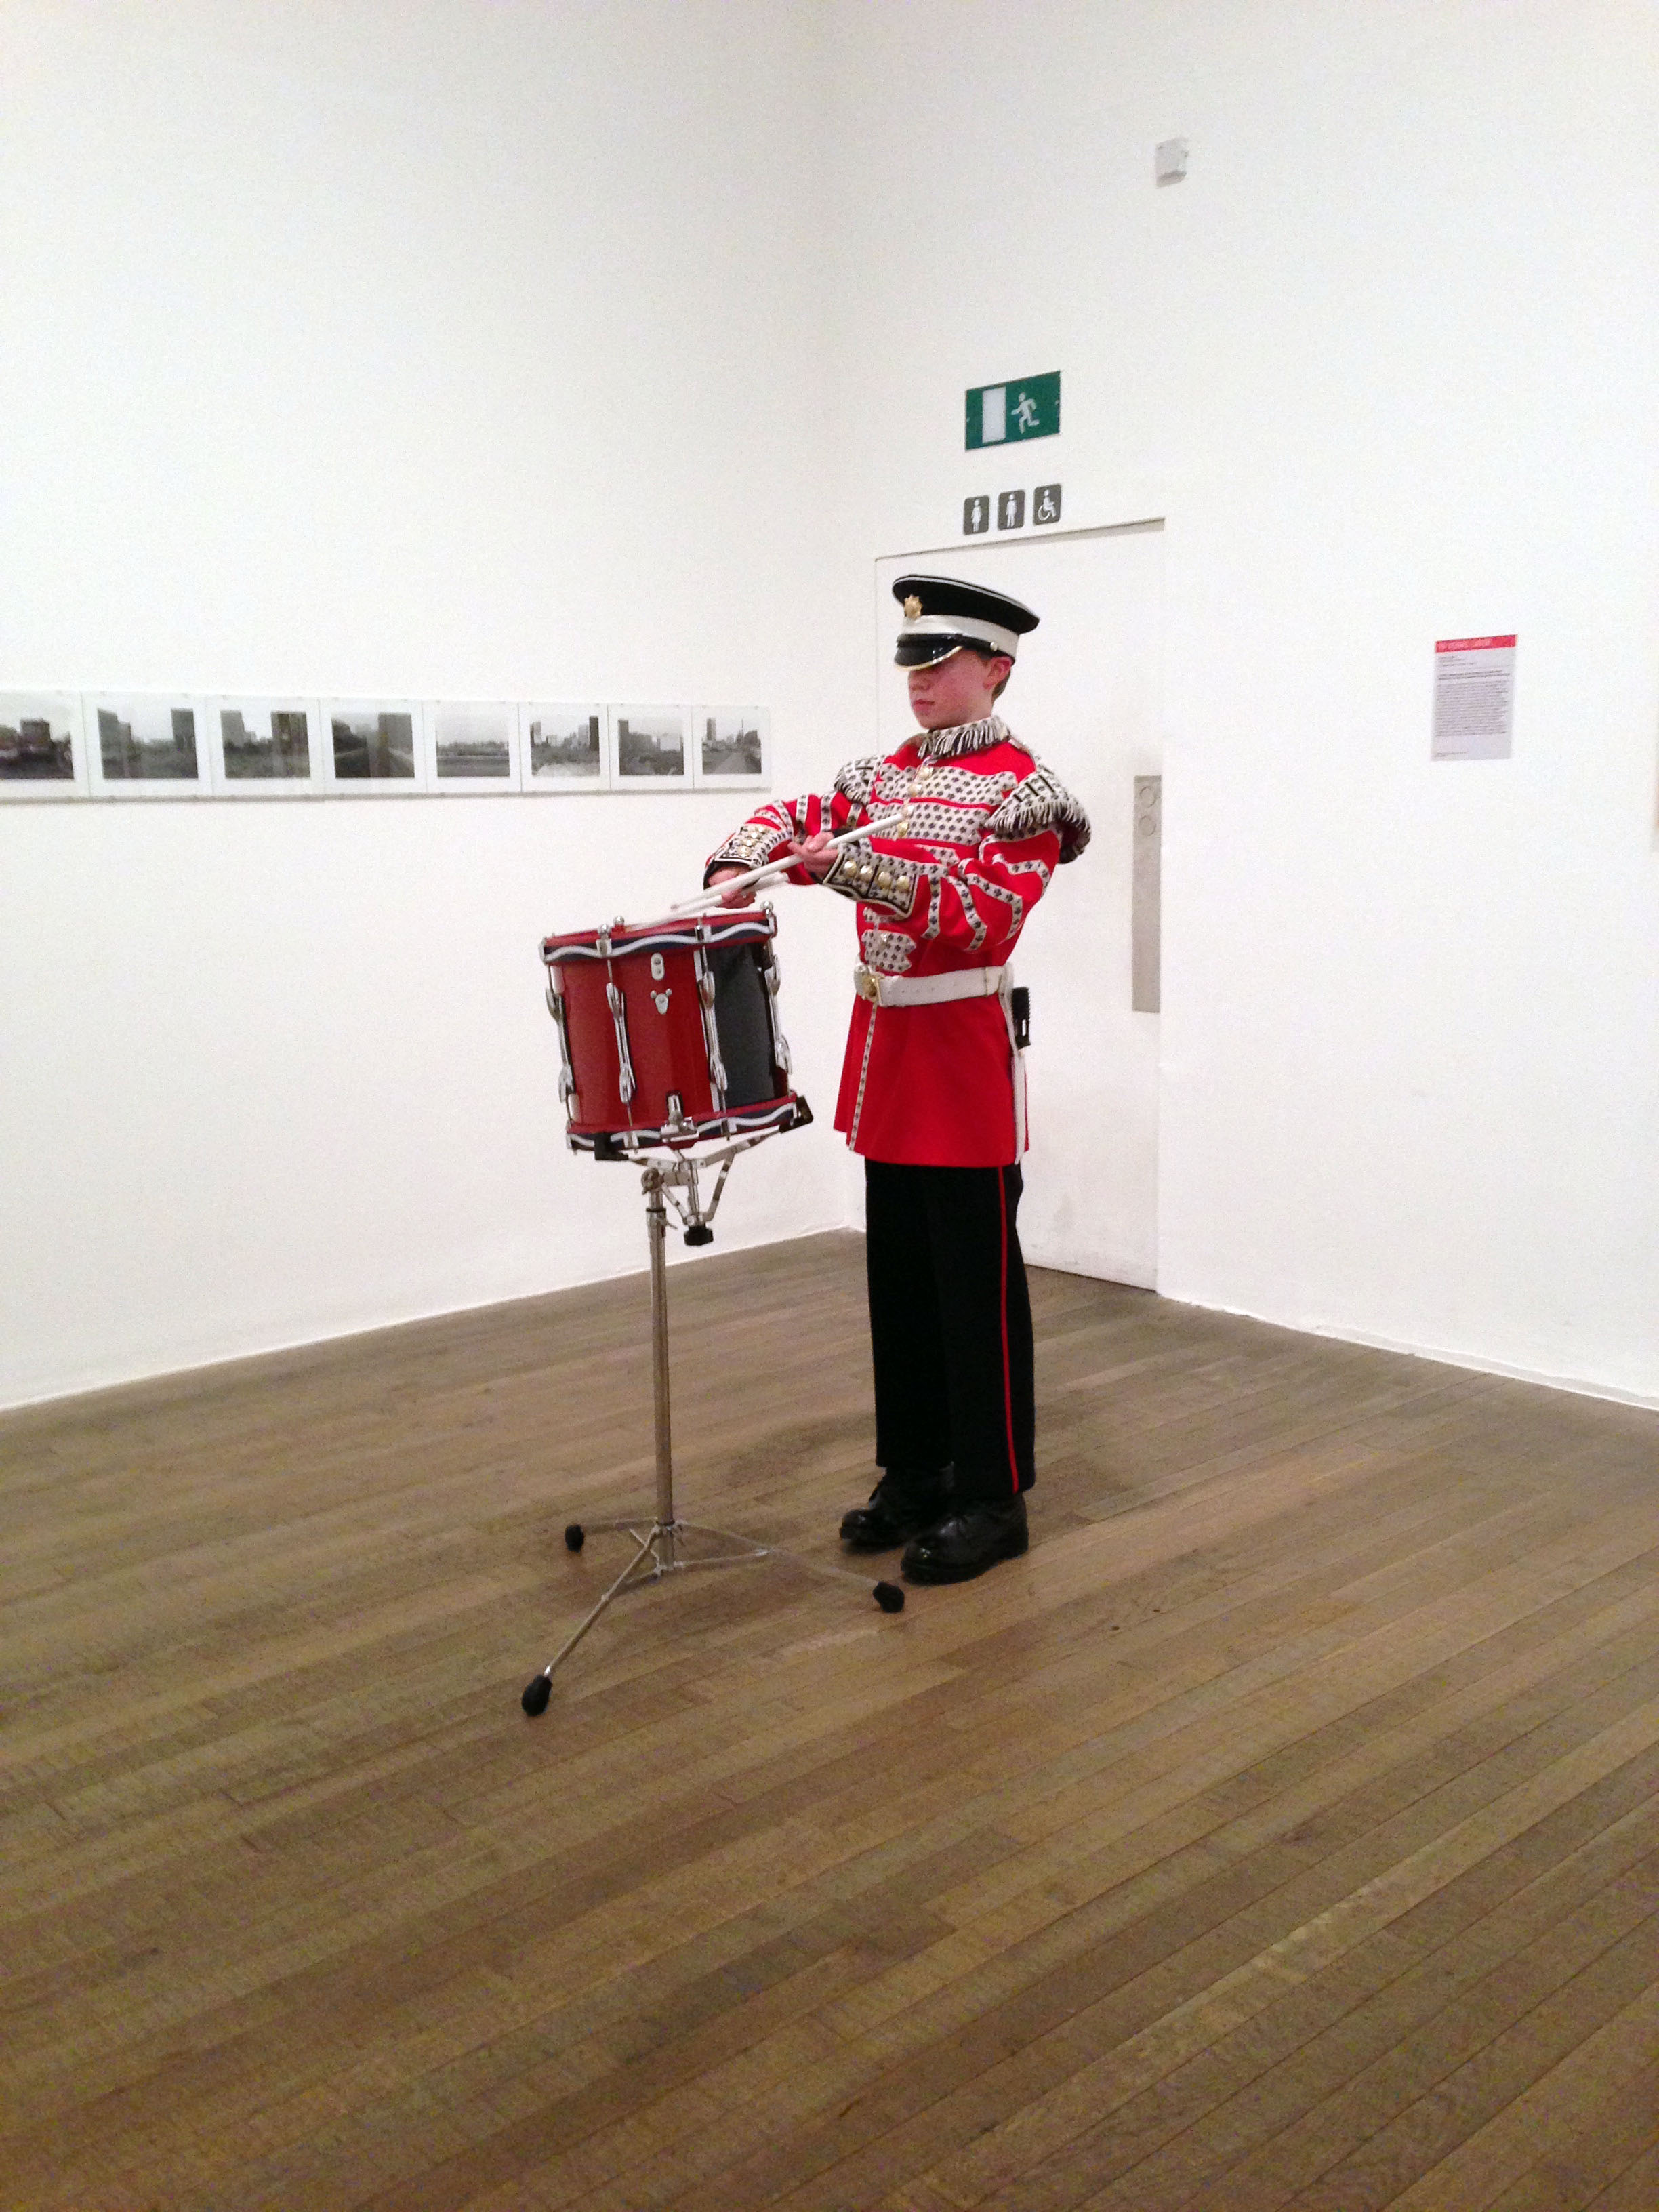 Adam Broomberg and Oliver Chanarin, War Primer II: One Way Song at Tate Modern, 26 January 2015, photograph by Jessie Bond